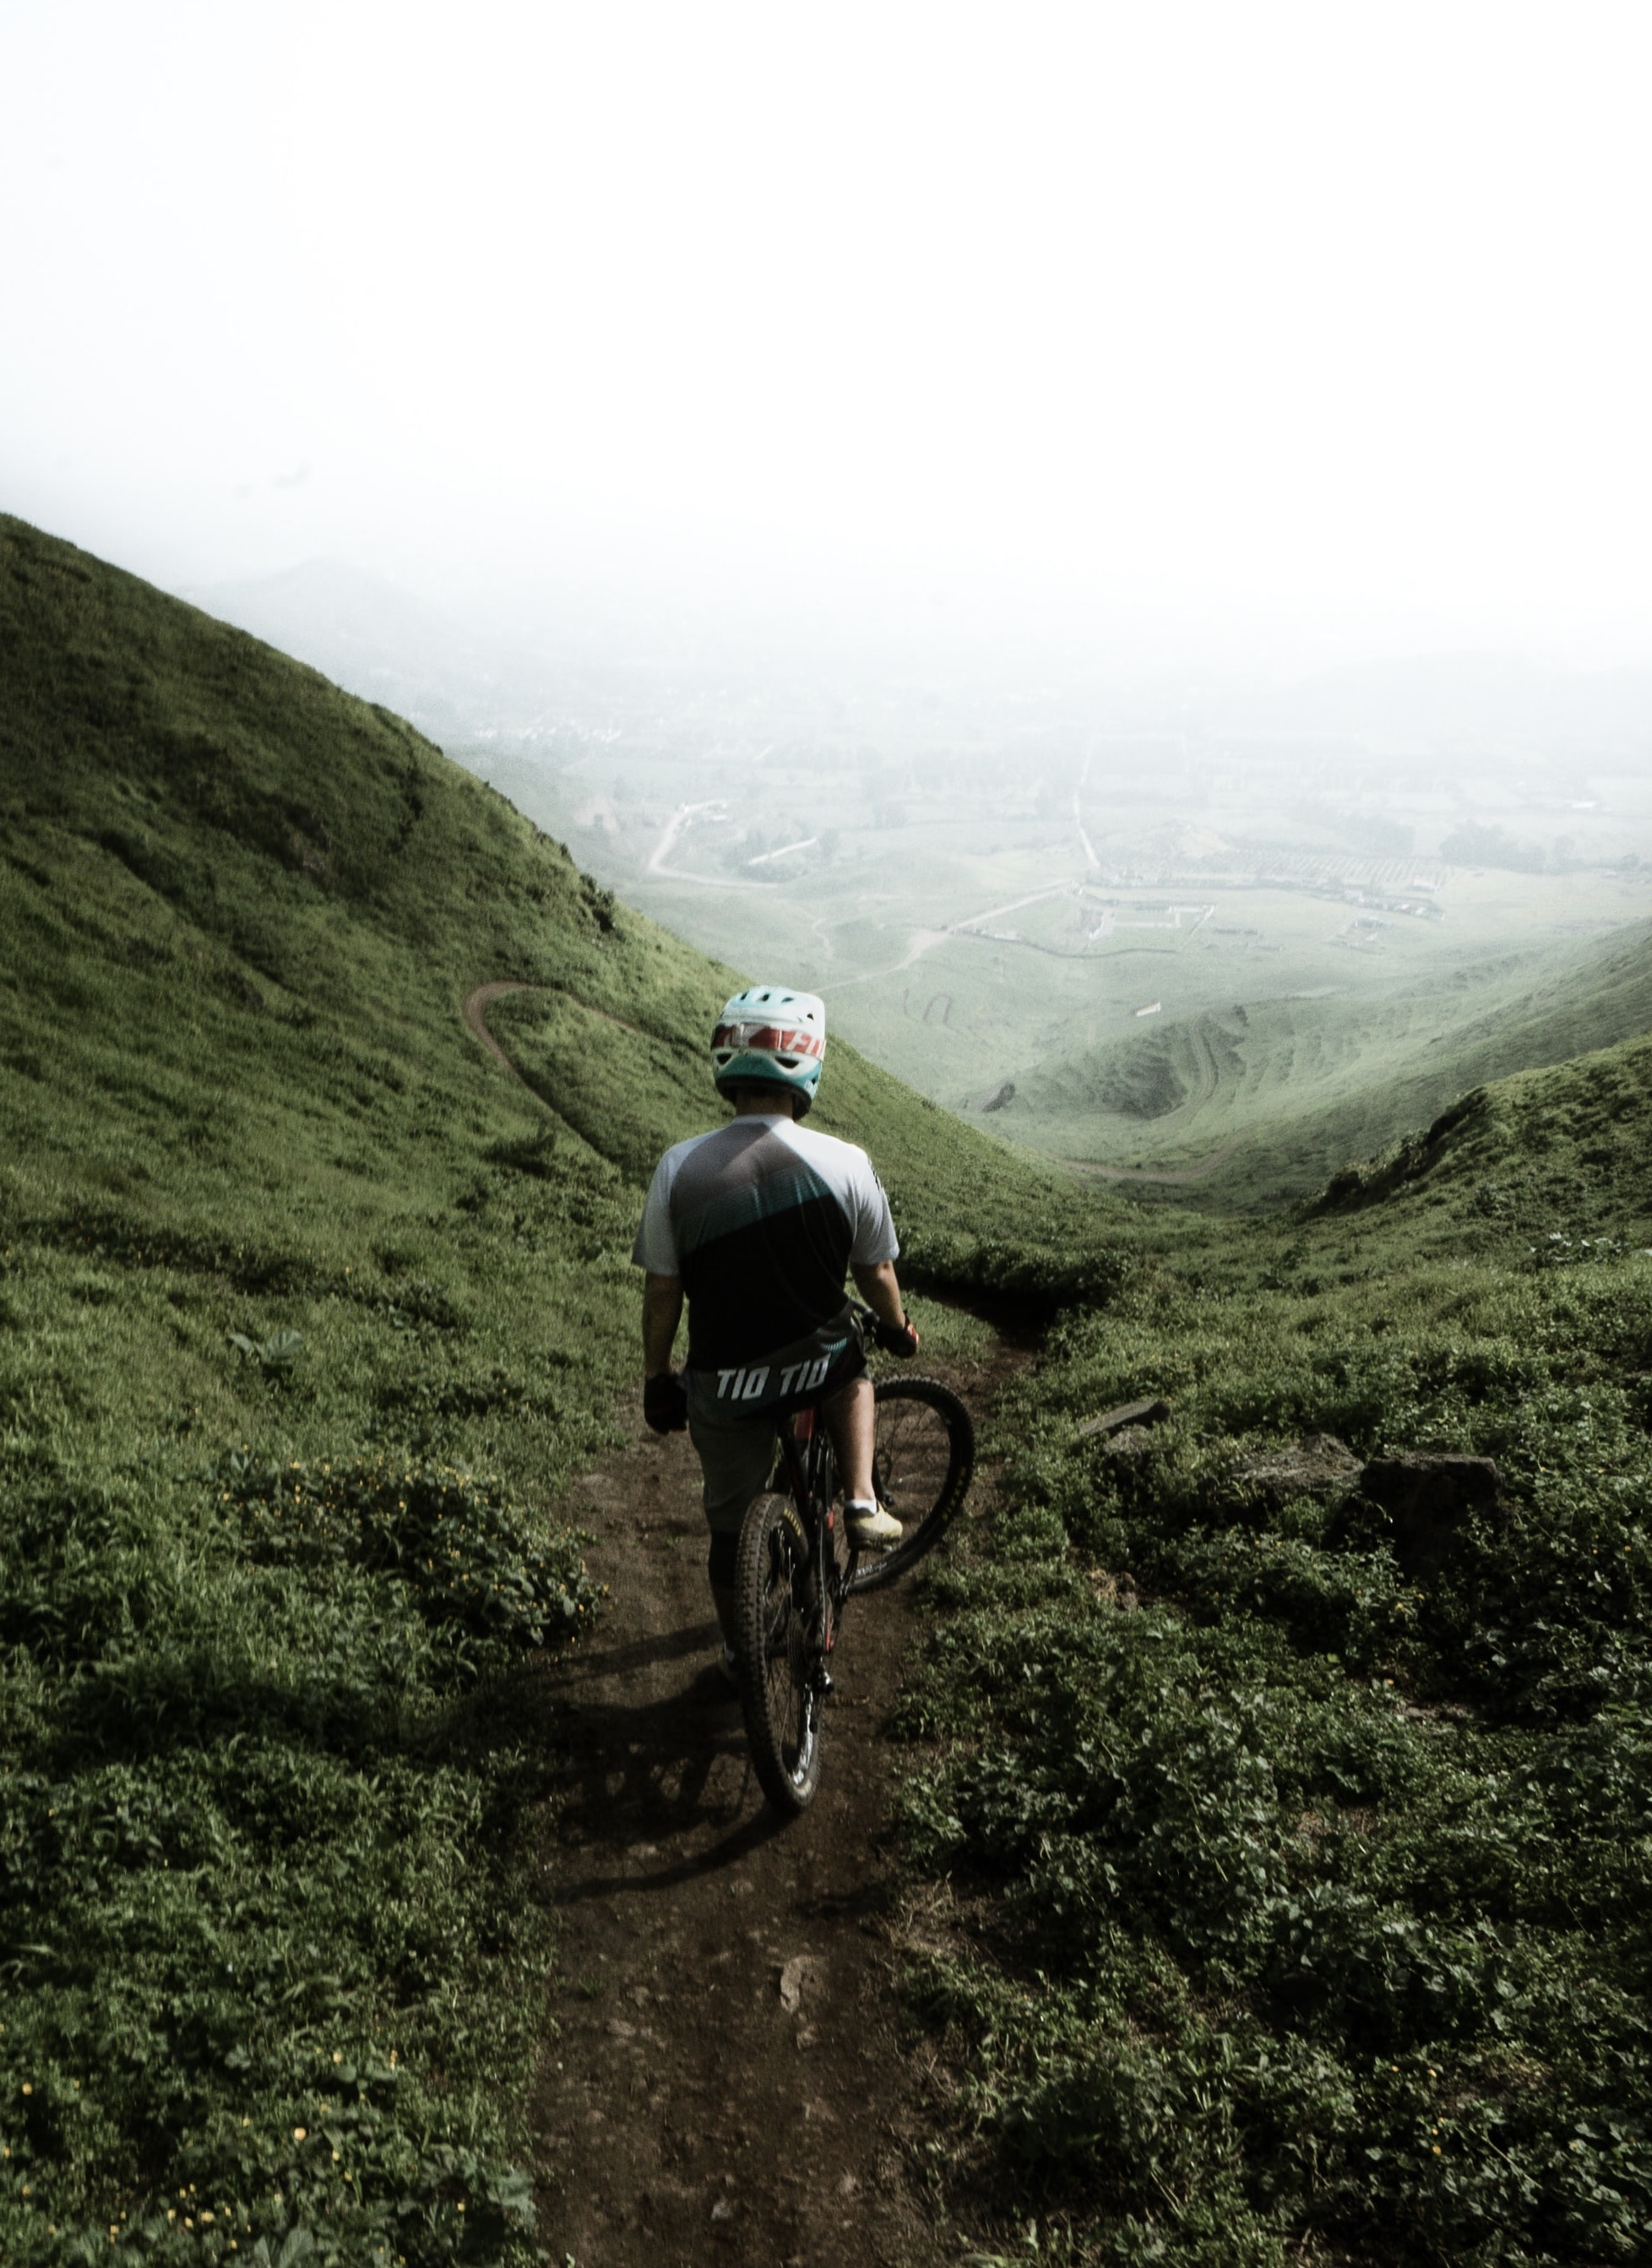 This picture shows a mountain biker on top of a hill during foggy weather conditions.